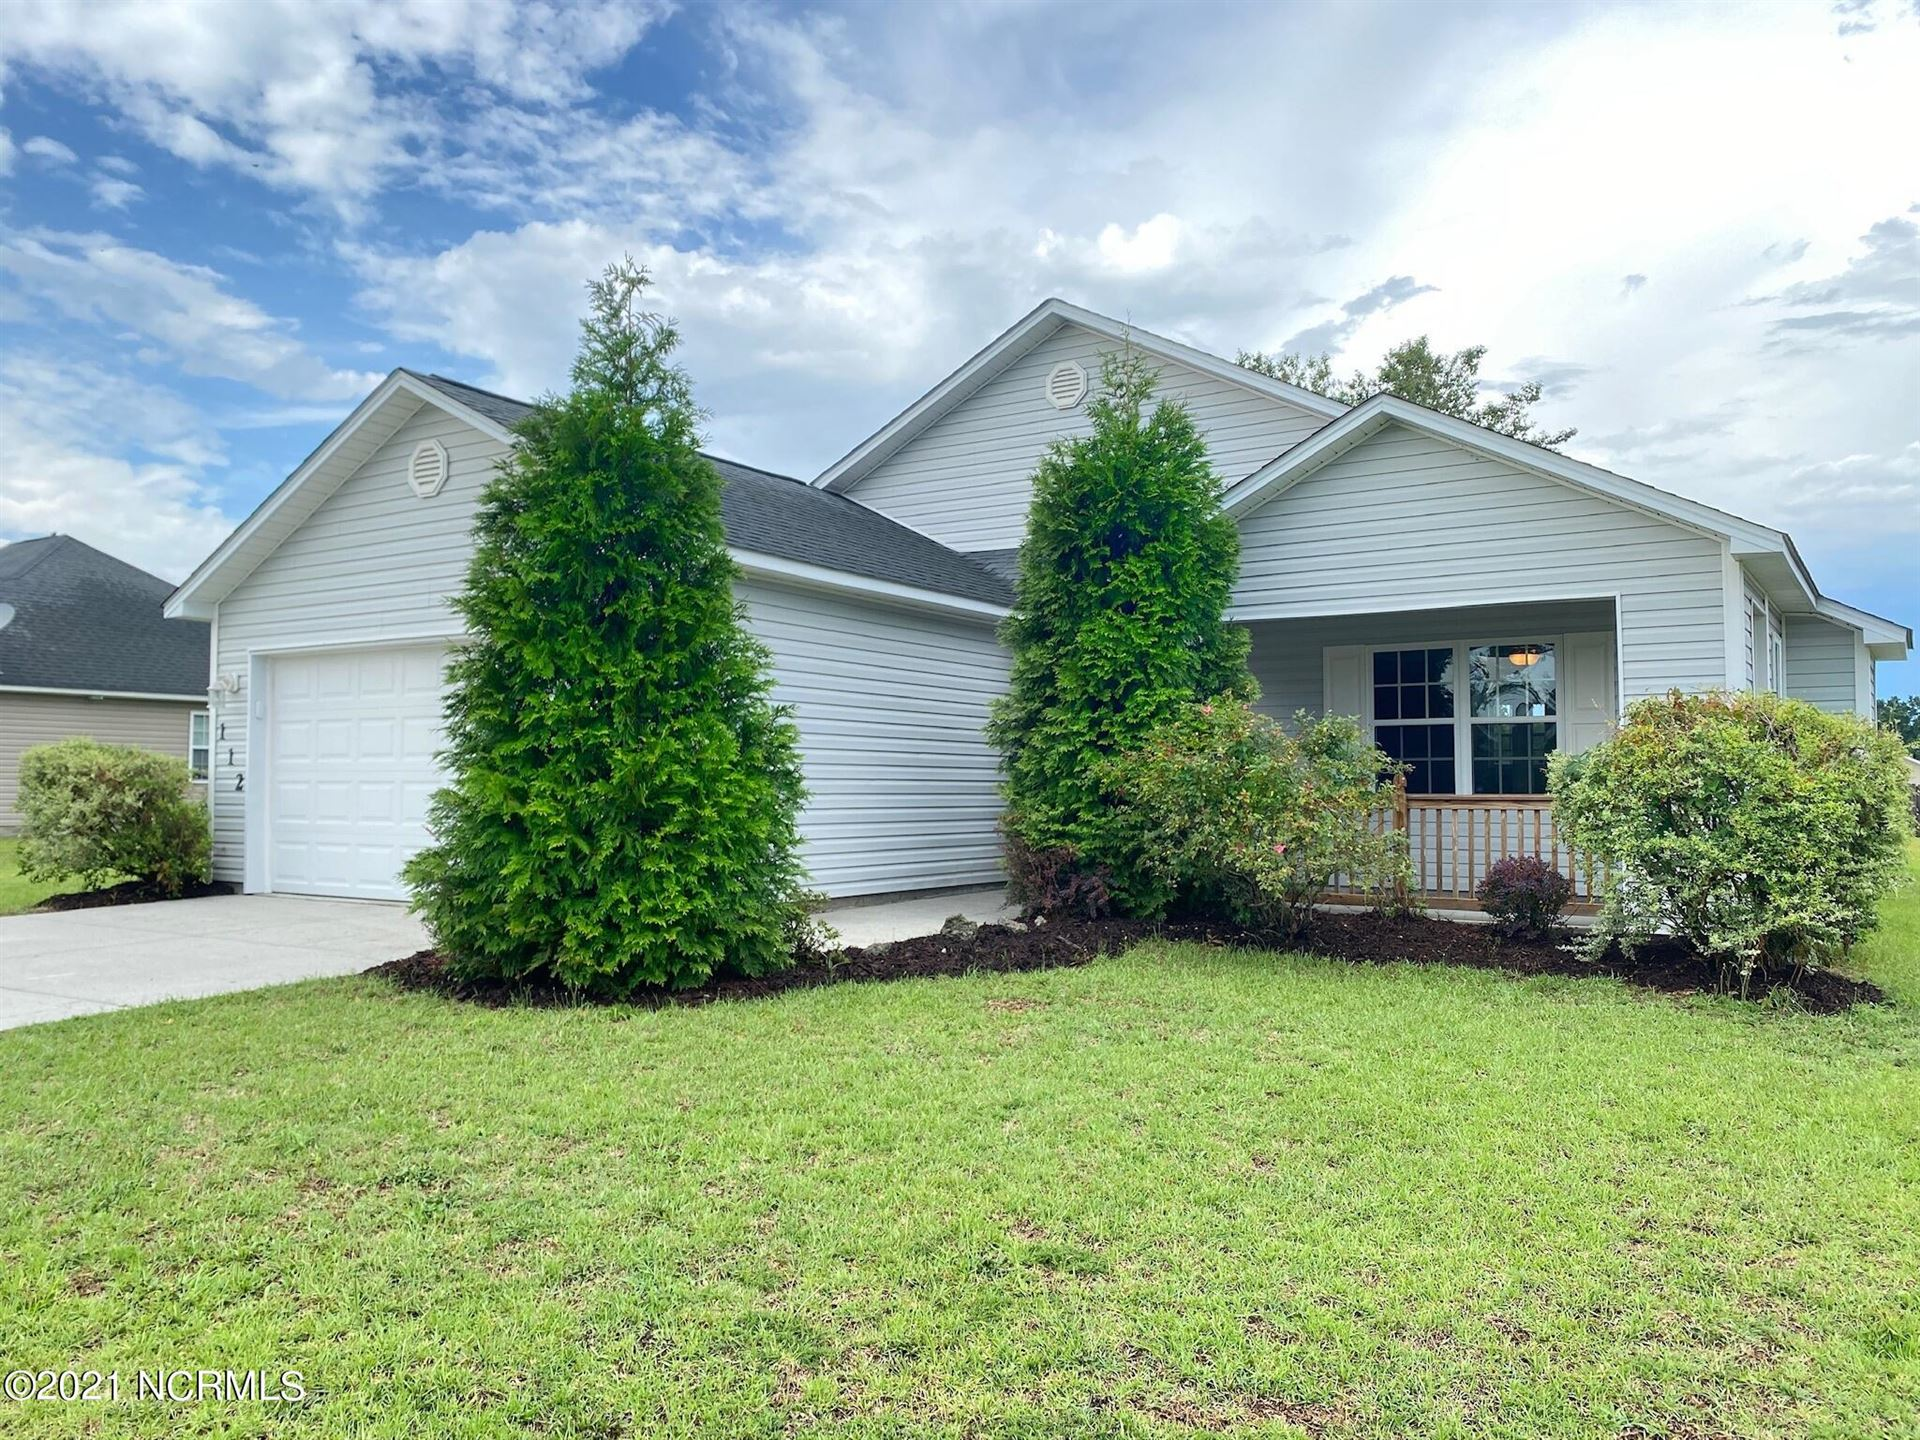 Photo of 112 Silver Queen Lane, Richlands, NC 28574 (MLS # 100282428)